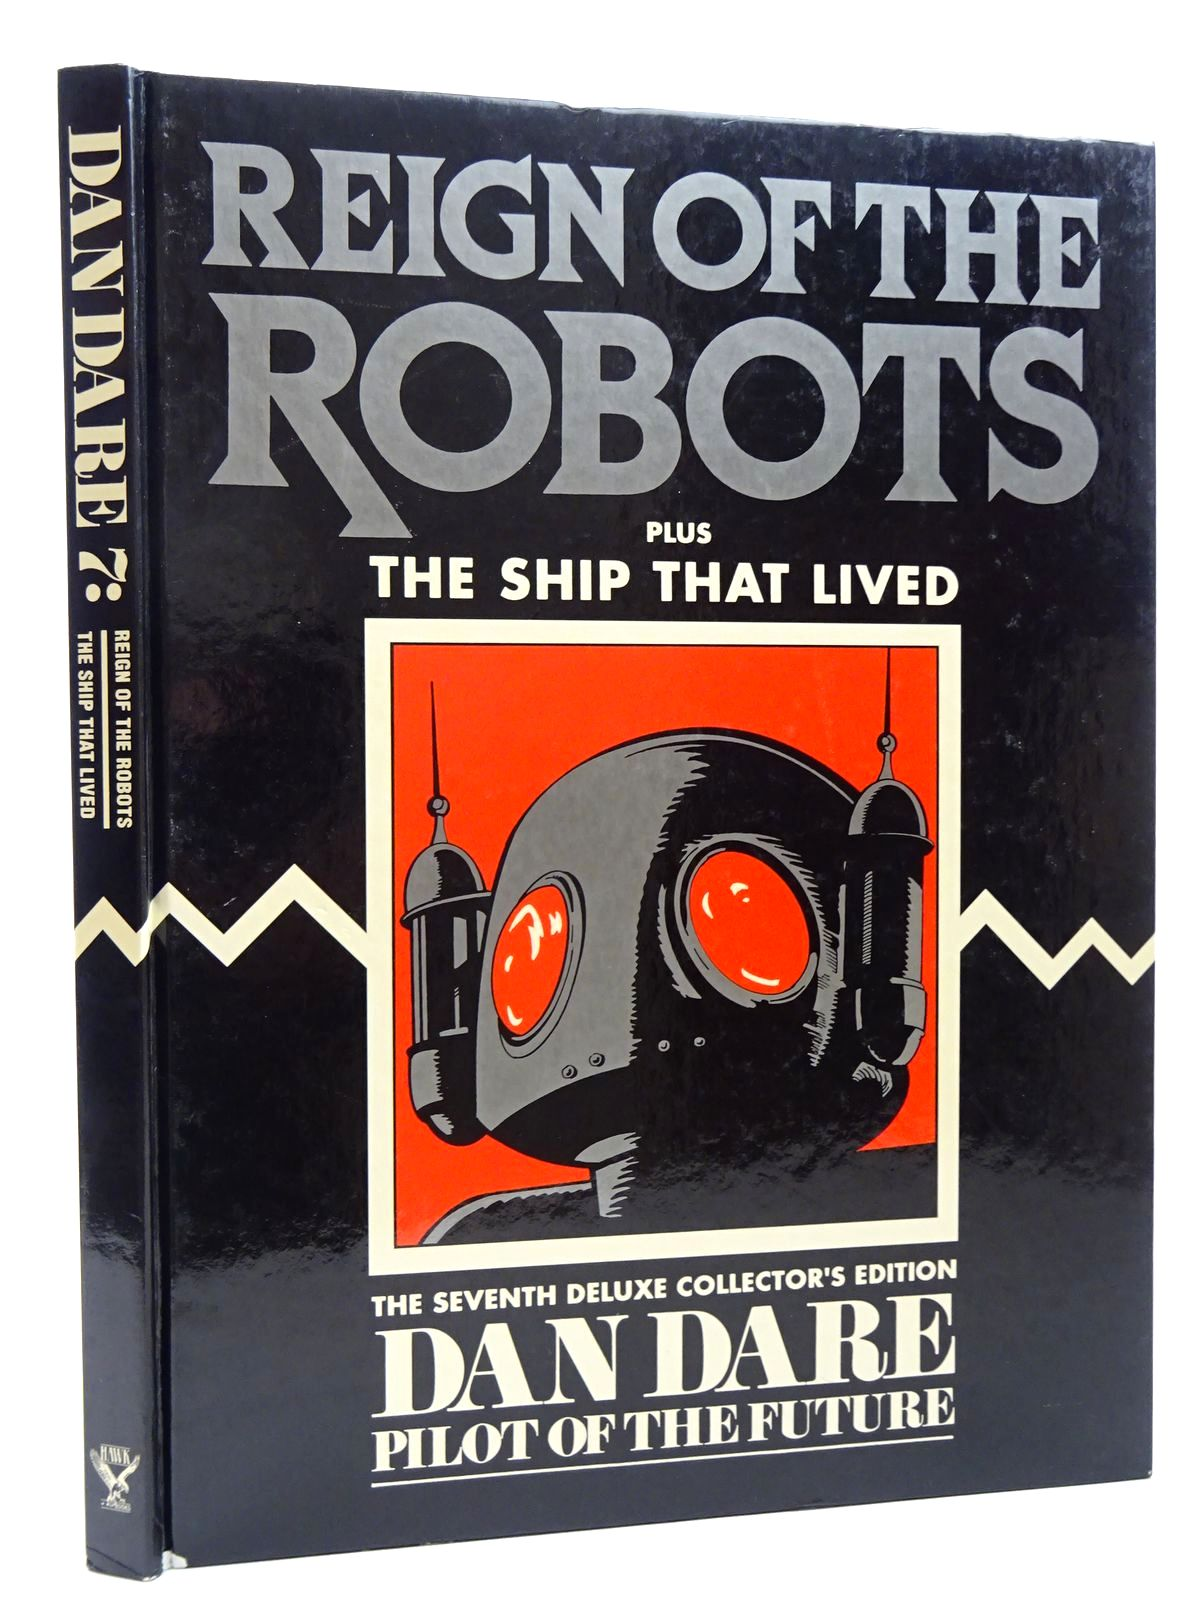 Photo of THE SEVENTH DELUXE COLLECTOR'S EDITION OF DAN DARE PILOT OF THE FUTURE REIGN OF THE ROBOTS PLUS THE SHIP THAT LIVED published by Hawk Books (STOCK CODE: 2124557)  for sale by Stella & Rose's Books